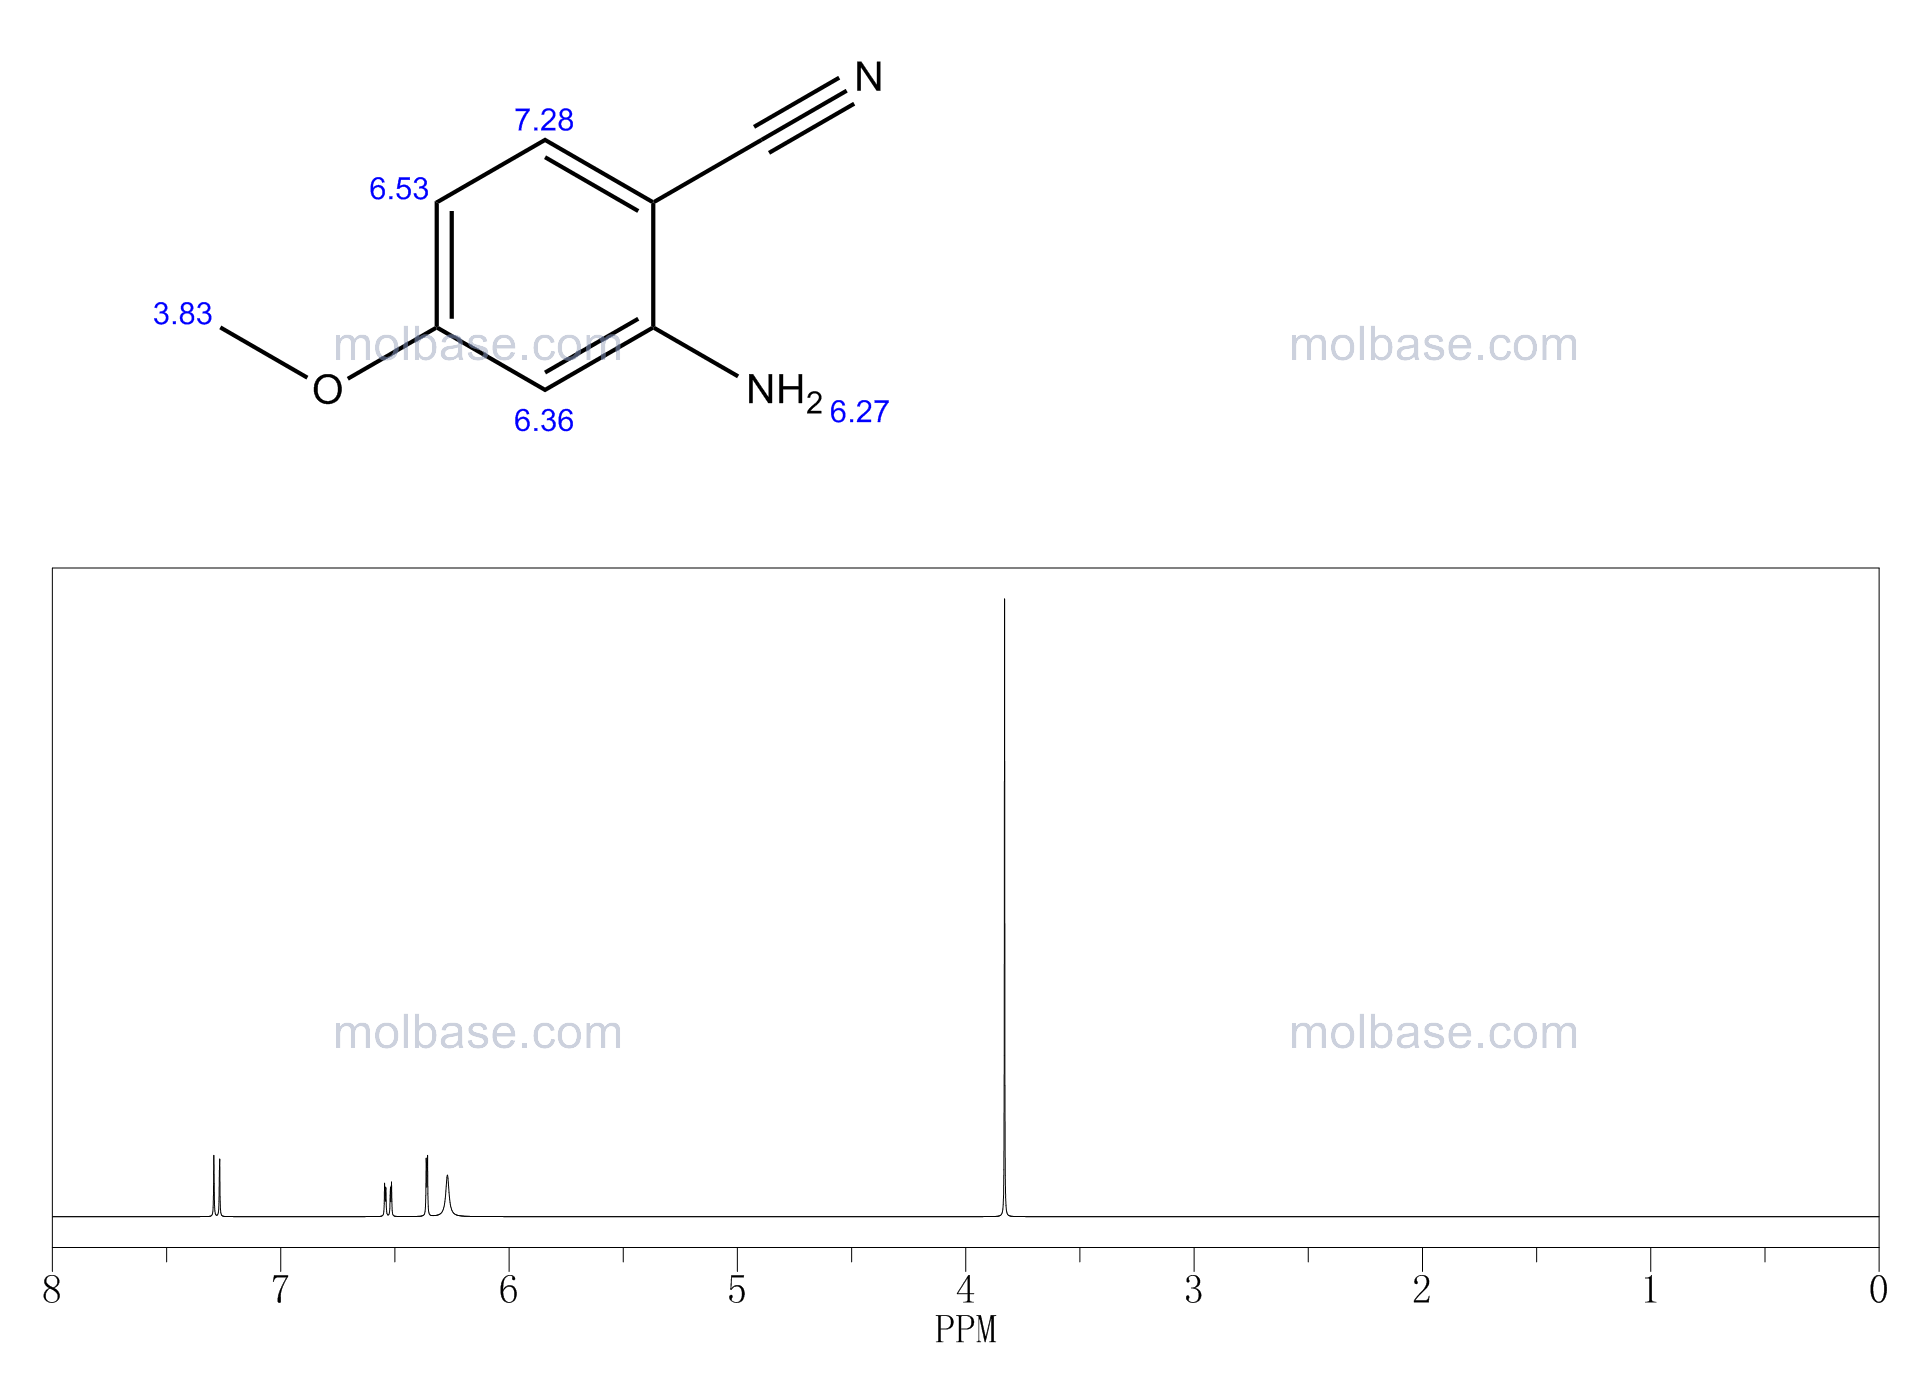 2-Amino-4-methoxybenzonitrile NMR spectra analysis, Chemical CAS NO. 38487-85-3 NMR spectral analysis, 2-Amino-4-methoxybenzonitrile C-NMR spectrum